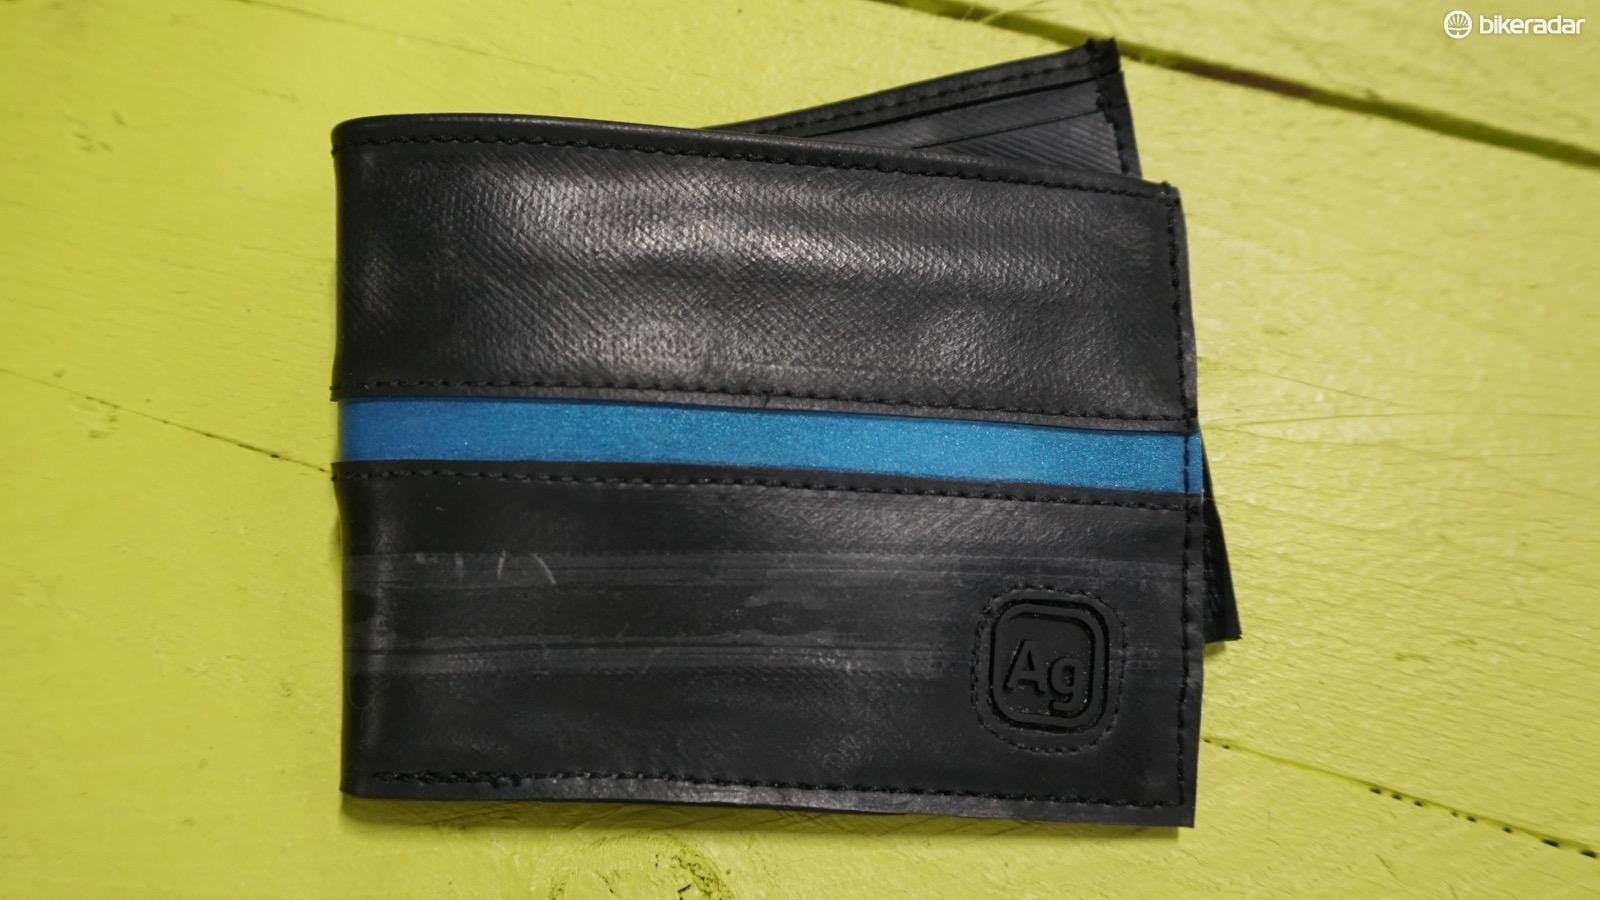 Green Guru recently purchased Alchemy Goods, another upcycle brand that makes stuff like this wallet